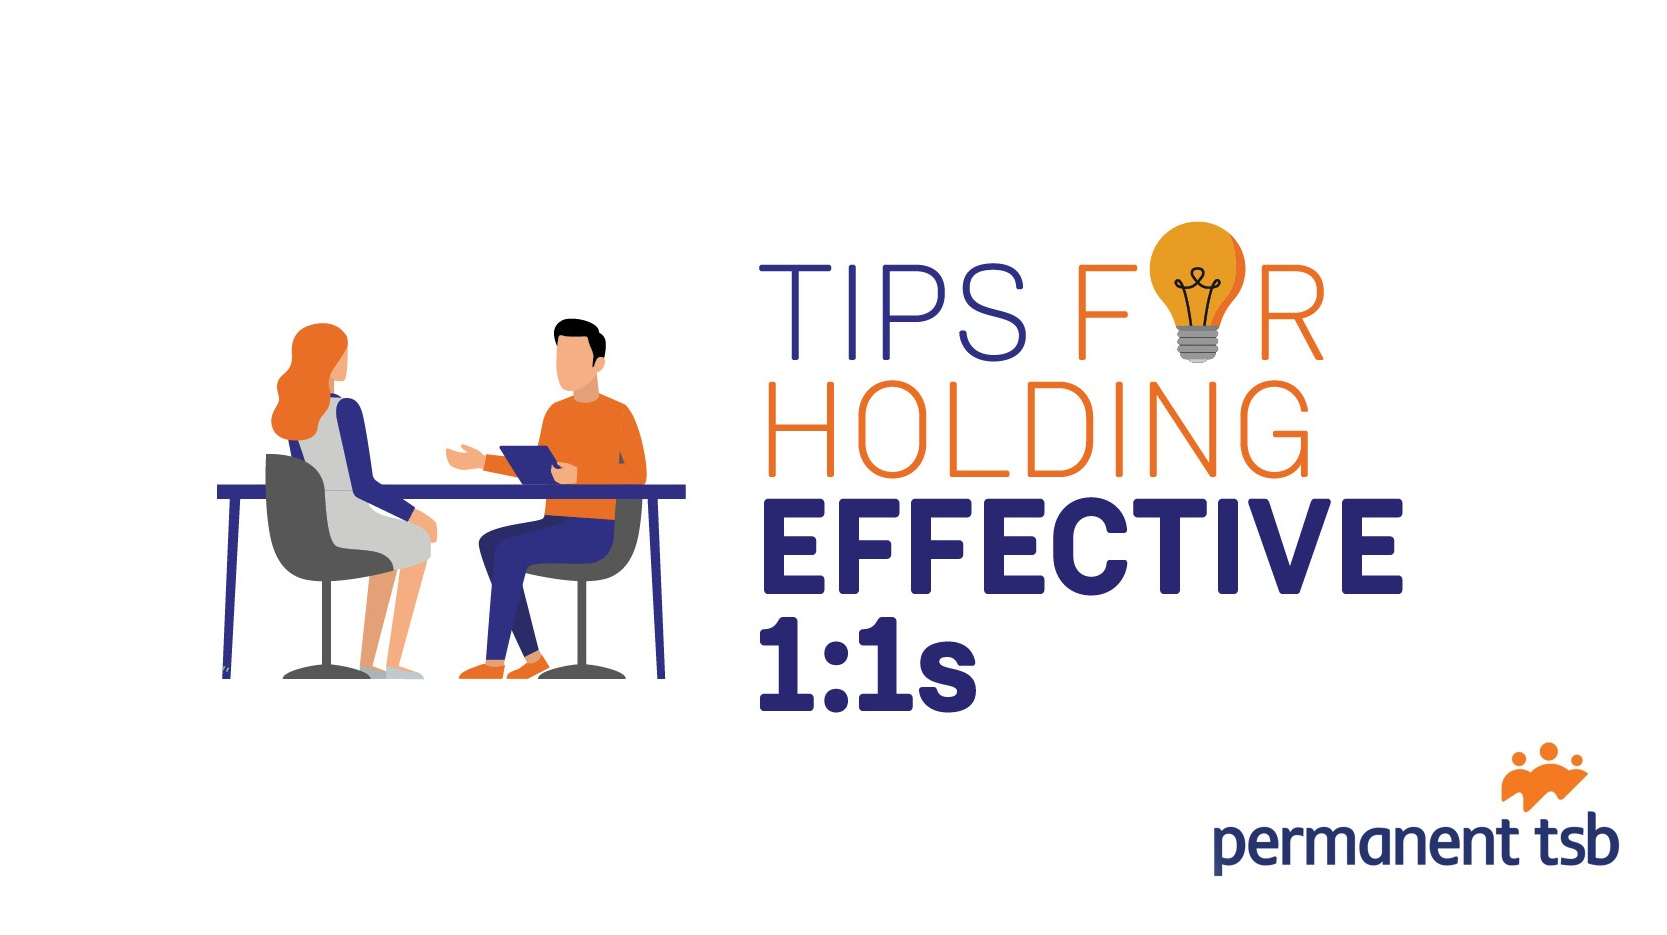 Tips for Effective 1:1s